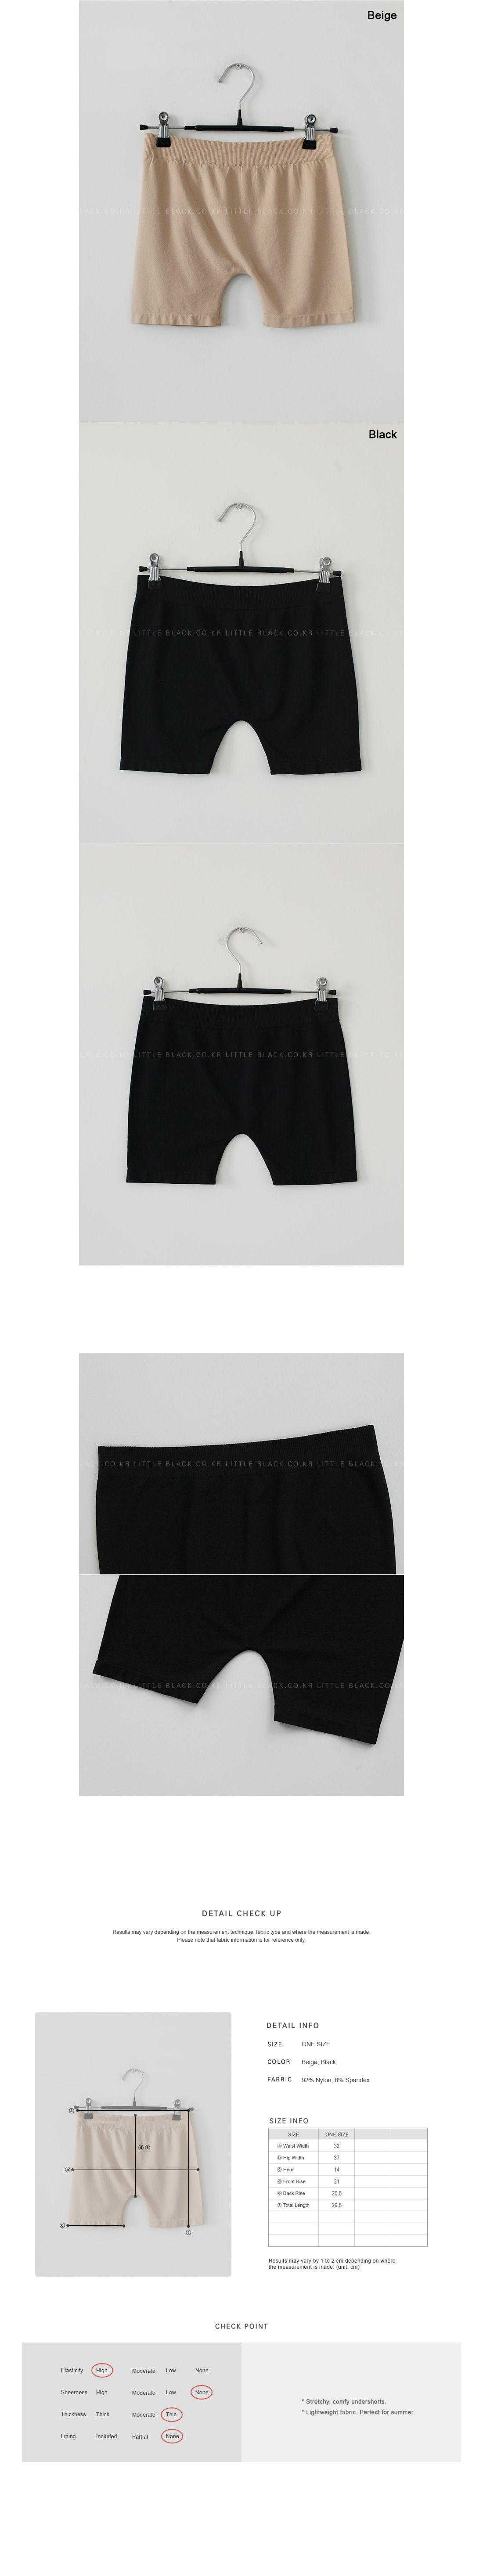 Solid Tone Undershorts And Underskirt|